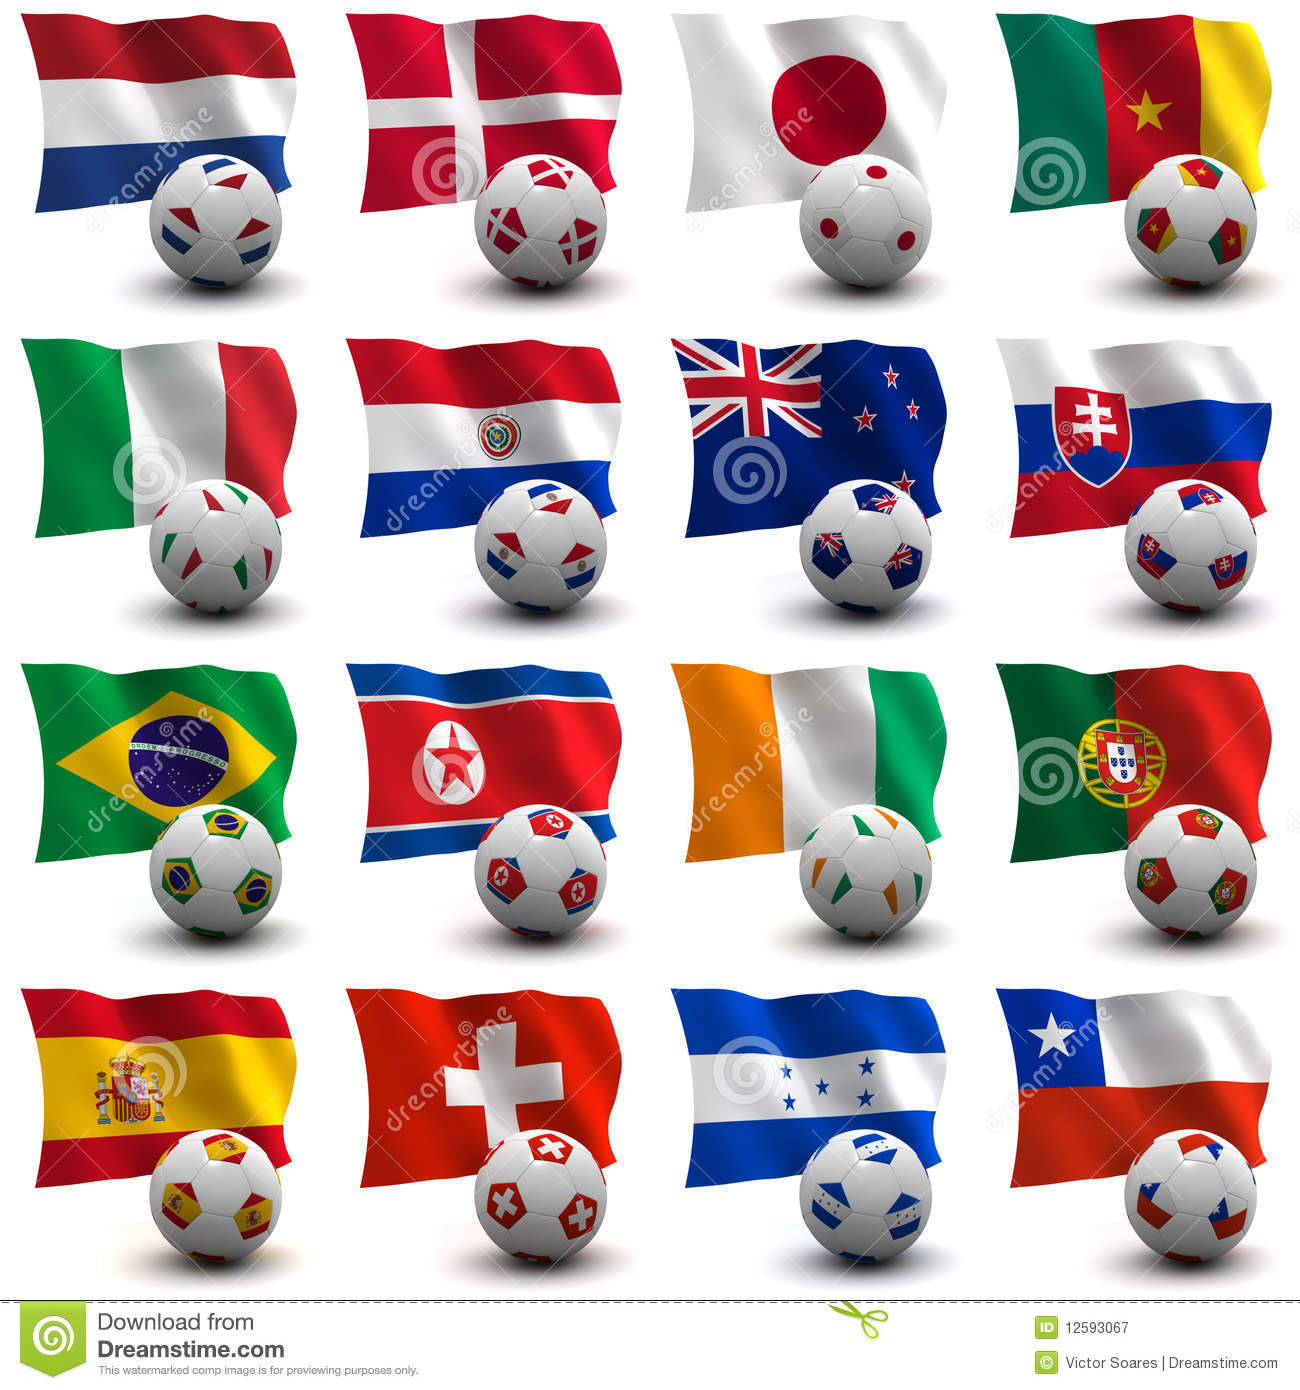 2010 soccer world cup essays